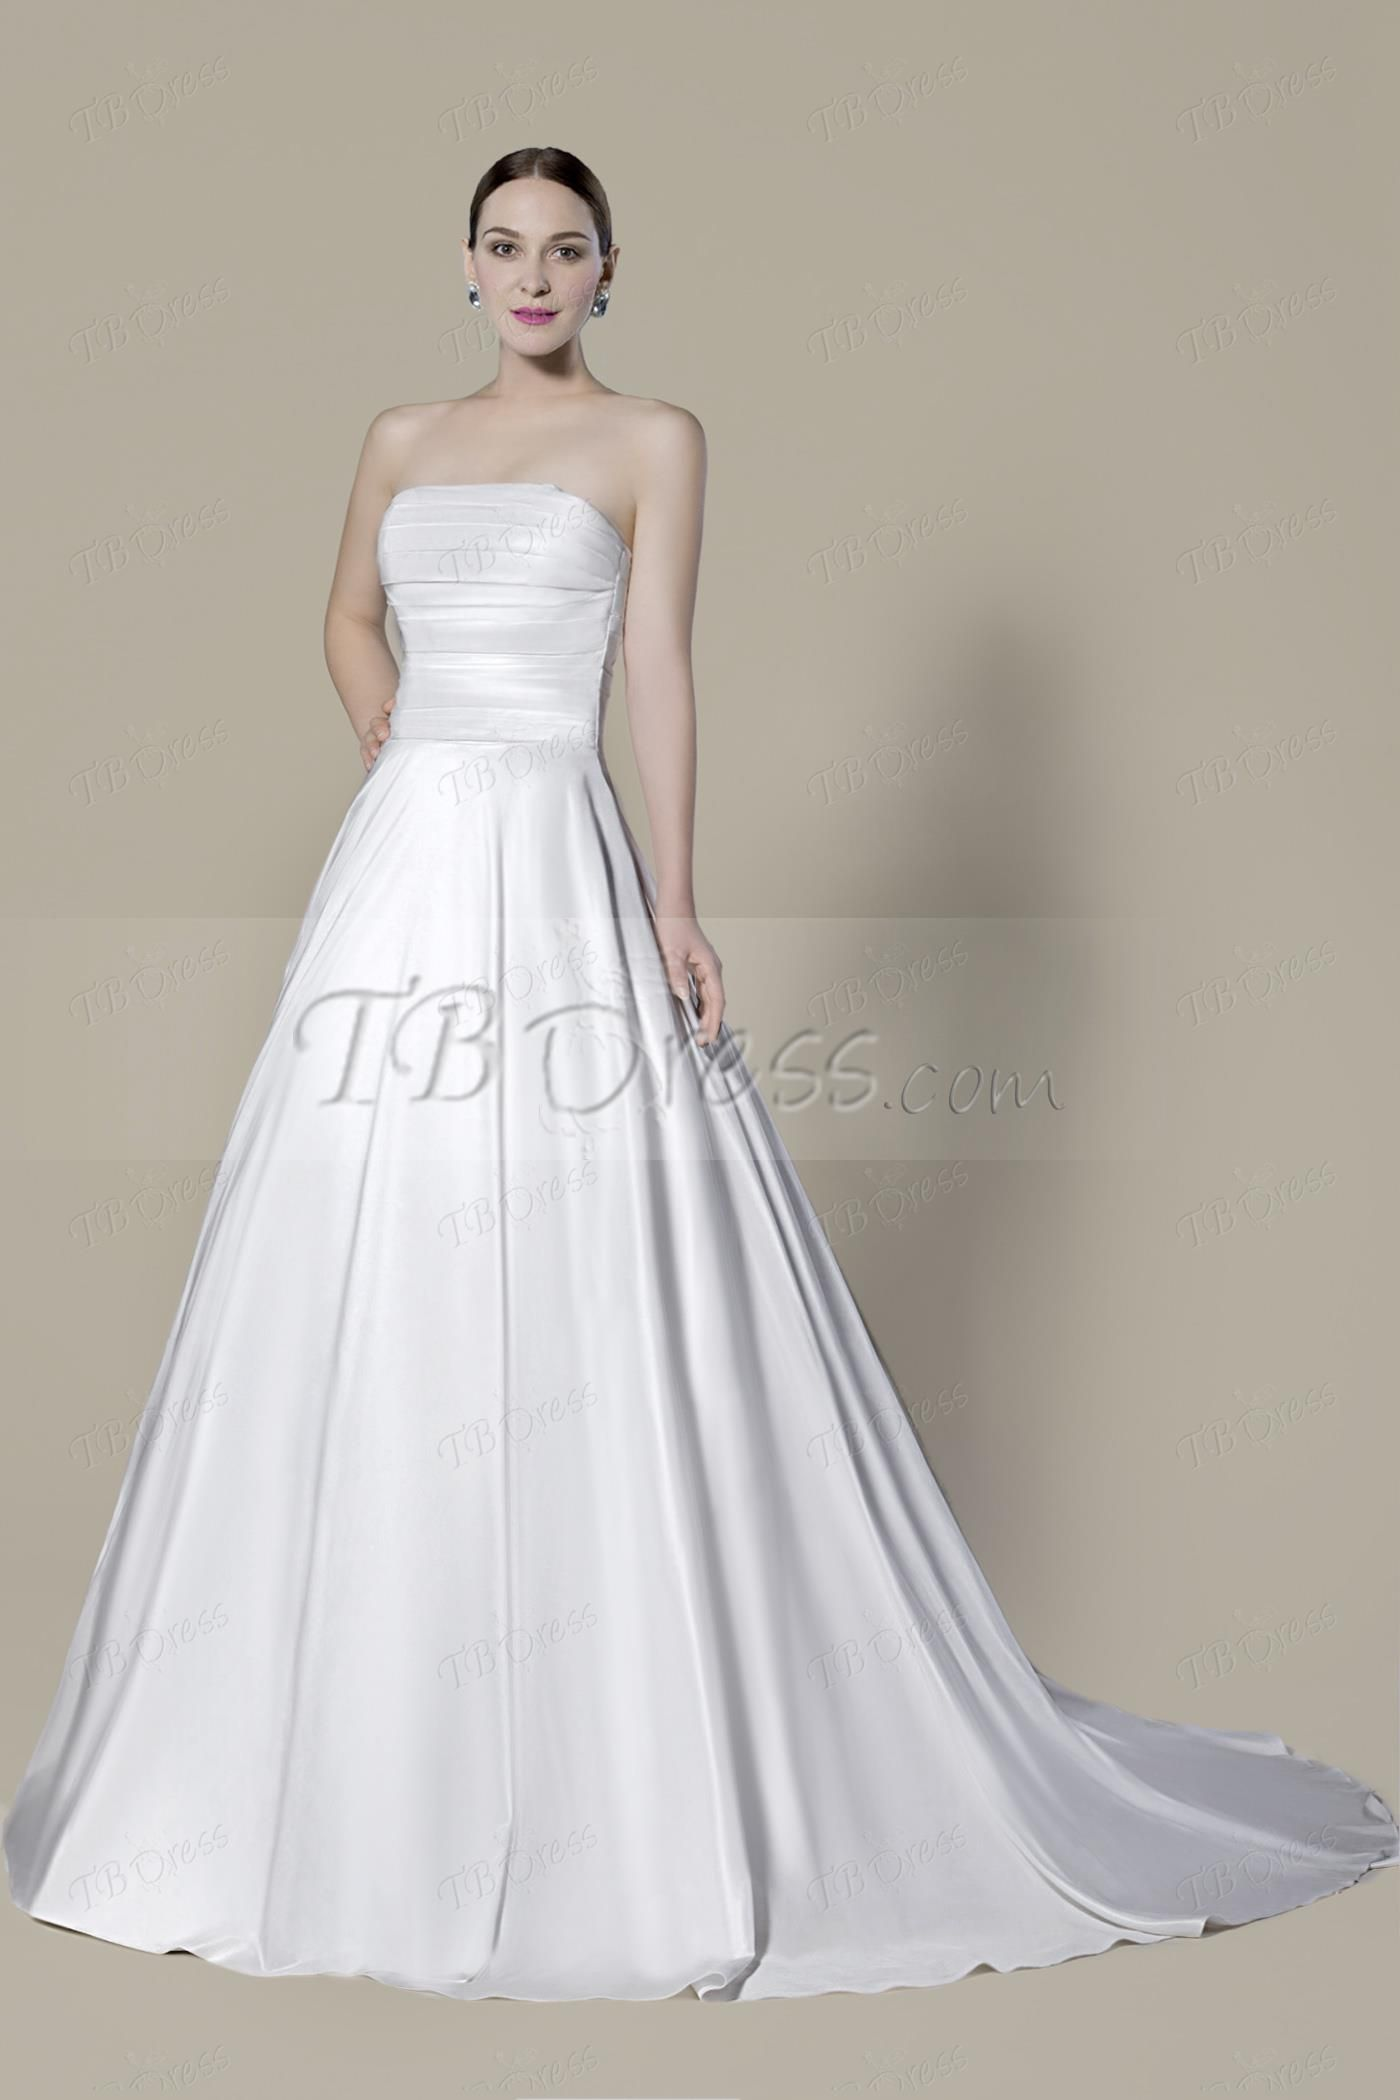 Strapless pleats buttoned back wedding dress ideas spur of the